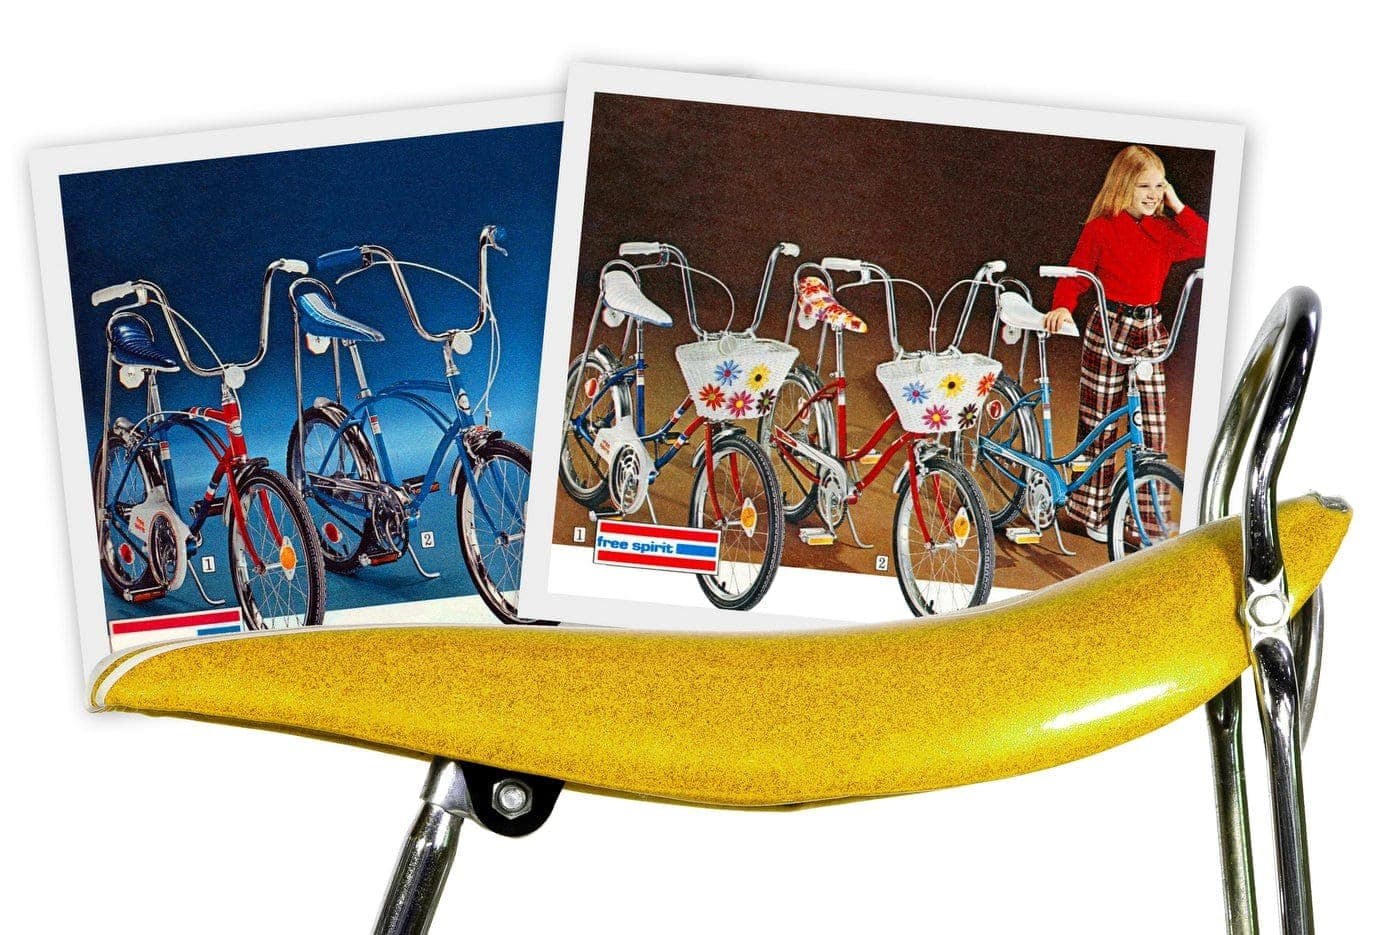 Vintage banana seat bikes for kids from the '60s & '70s